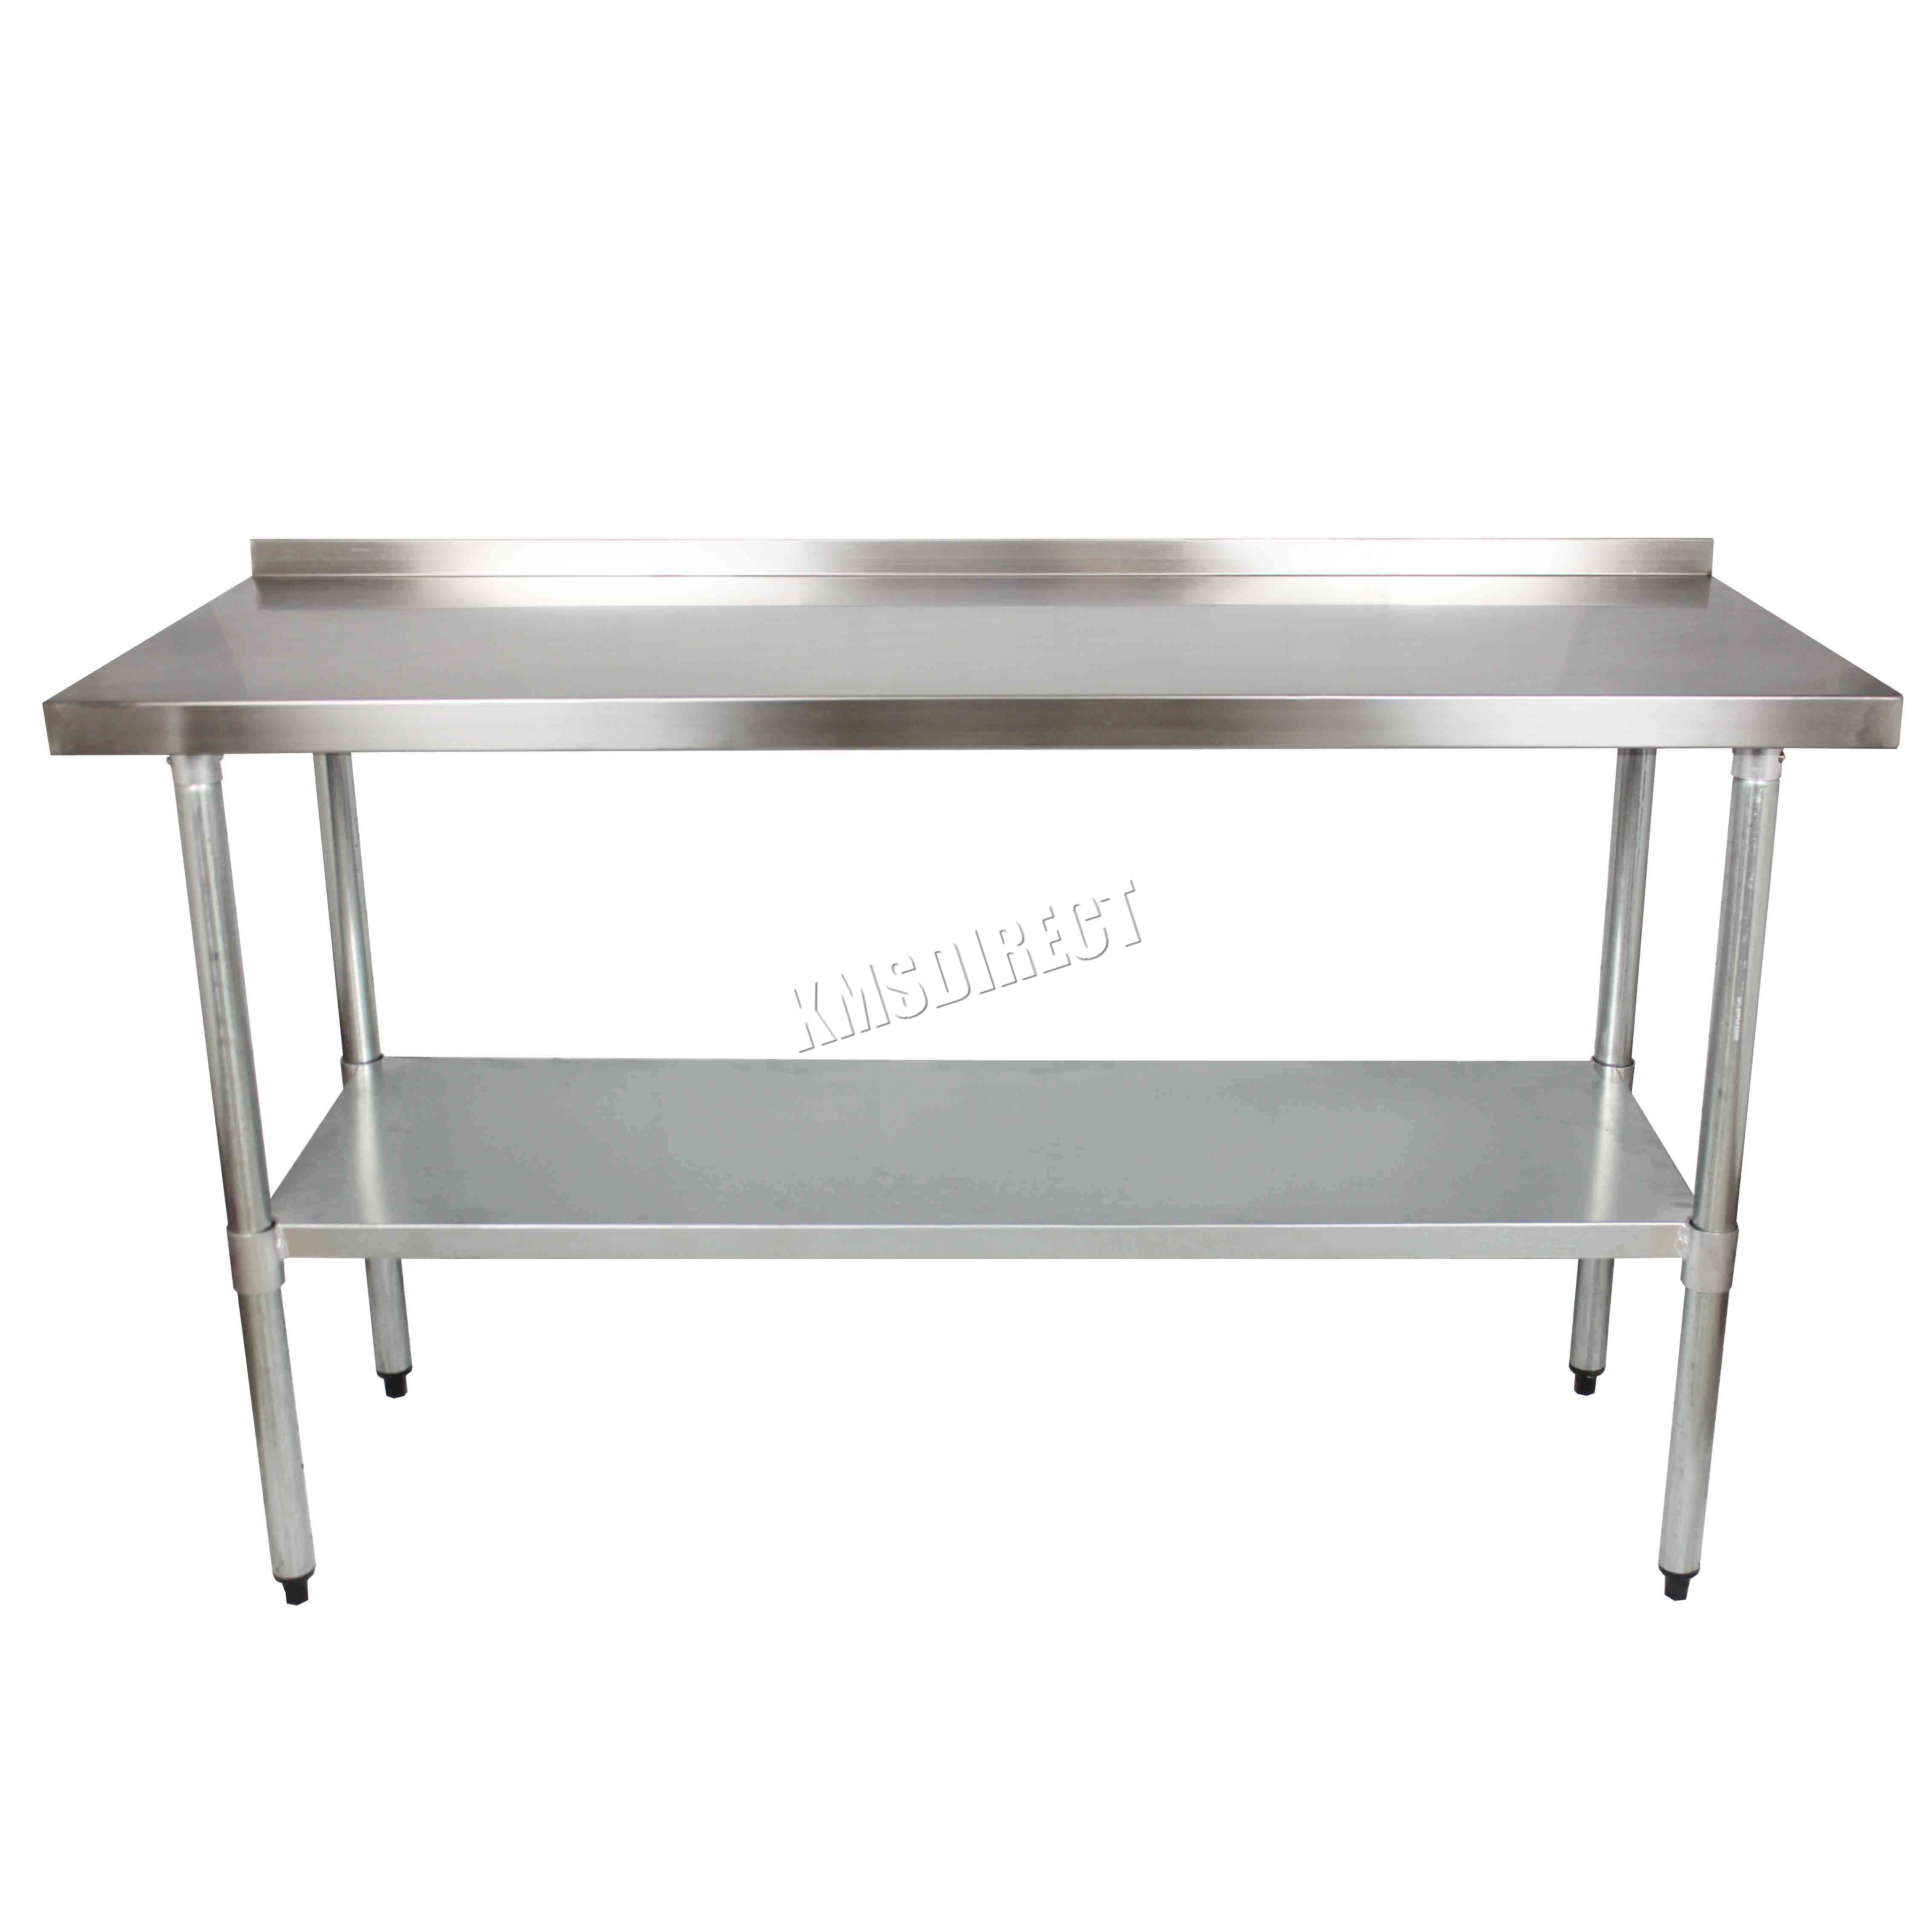 FoxHunter Stainless Steel Catering Table Backsplash Work Bench